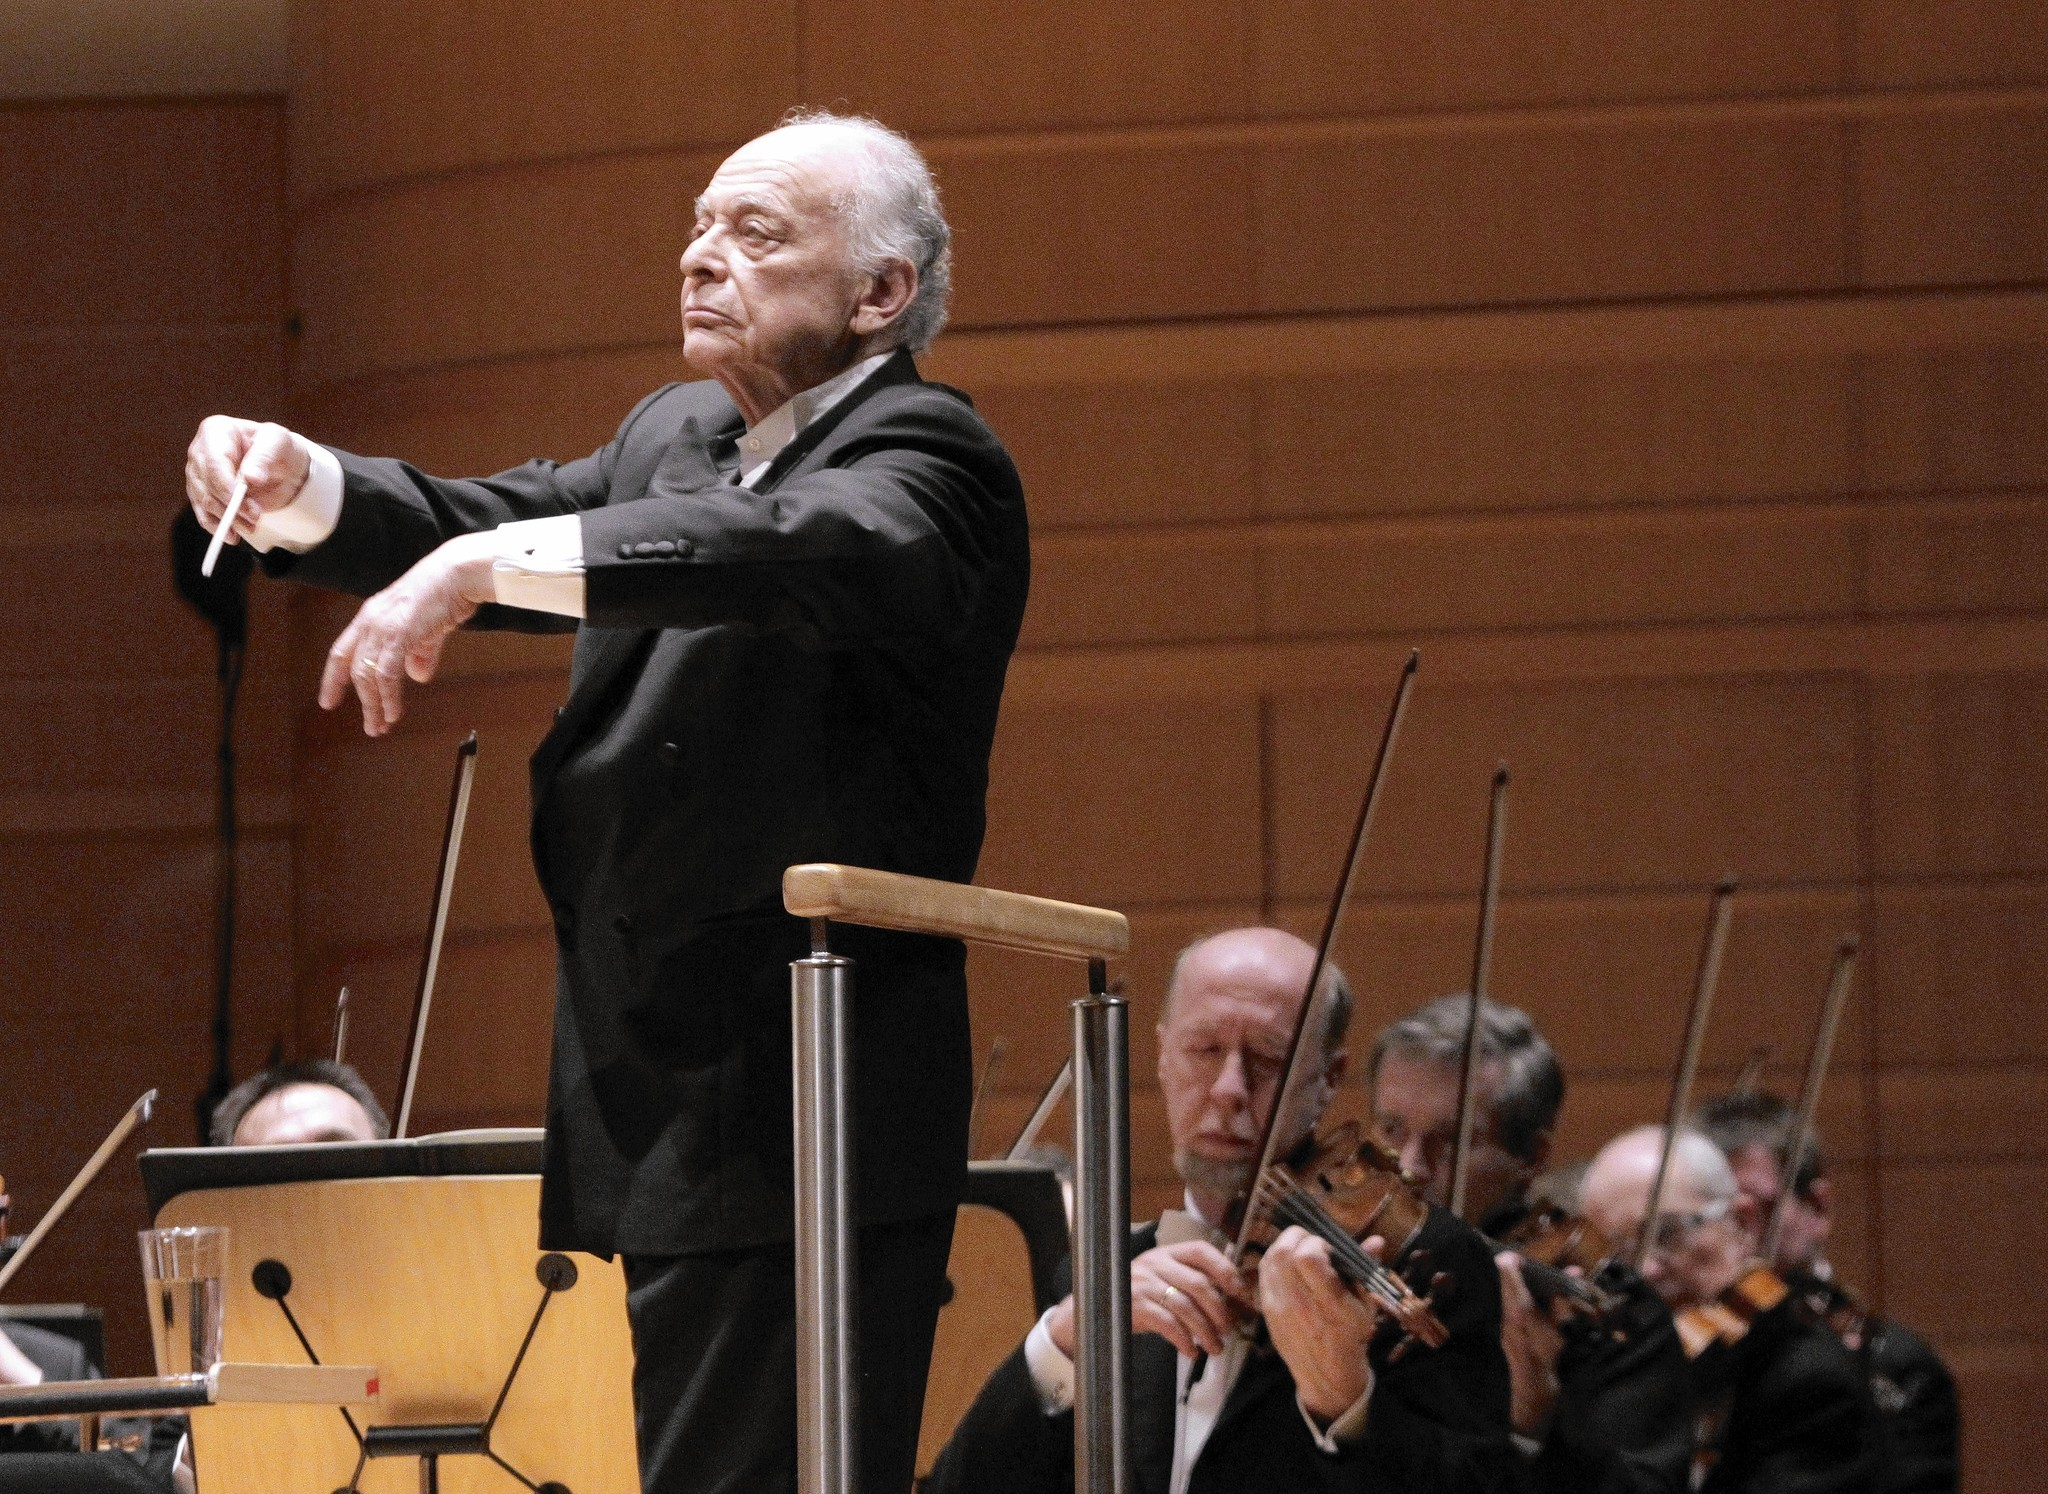 Lorin Maazel conducts the Vienna Philharmonic.